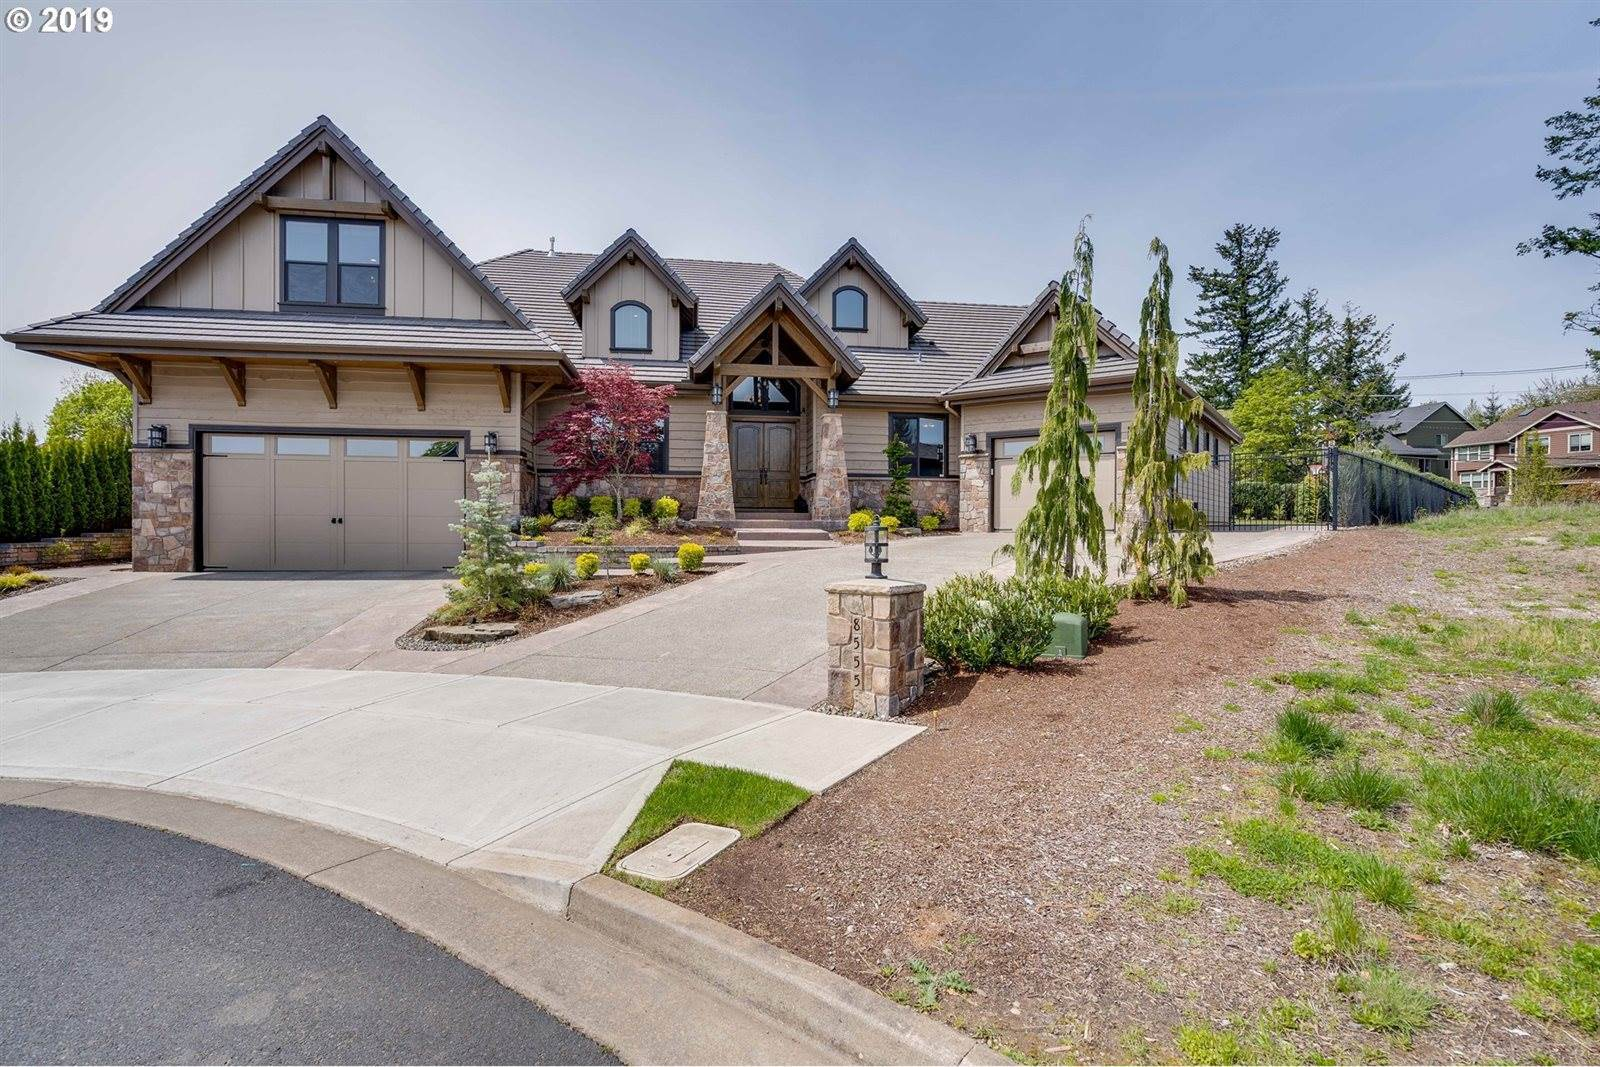 8555 SE Northern Heights Ct, Happy Valley, OR 97086